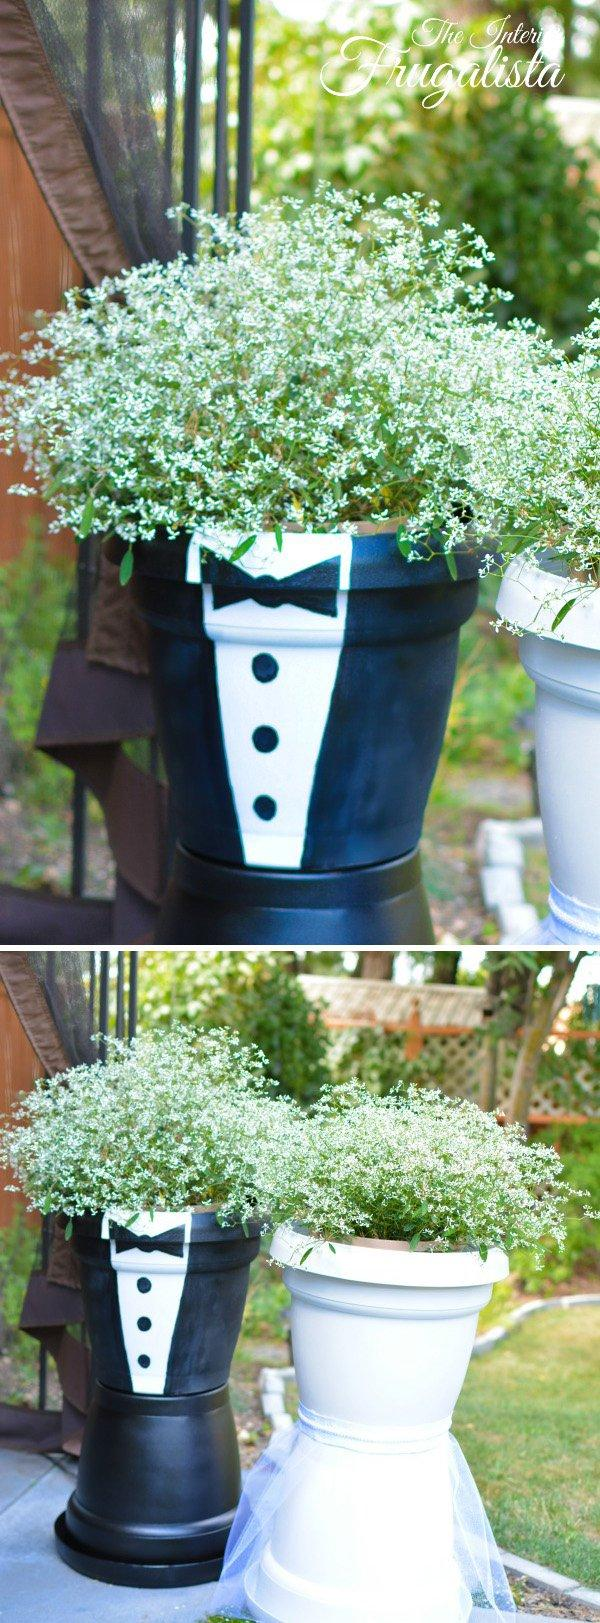 44 DIY Bridal Couple Flower Pots